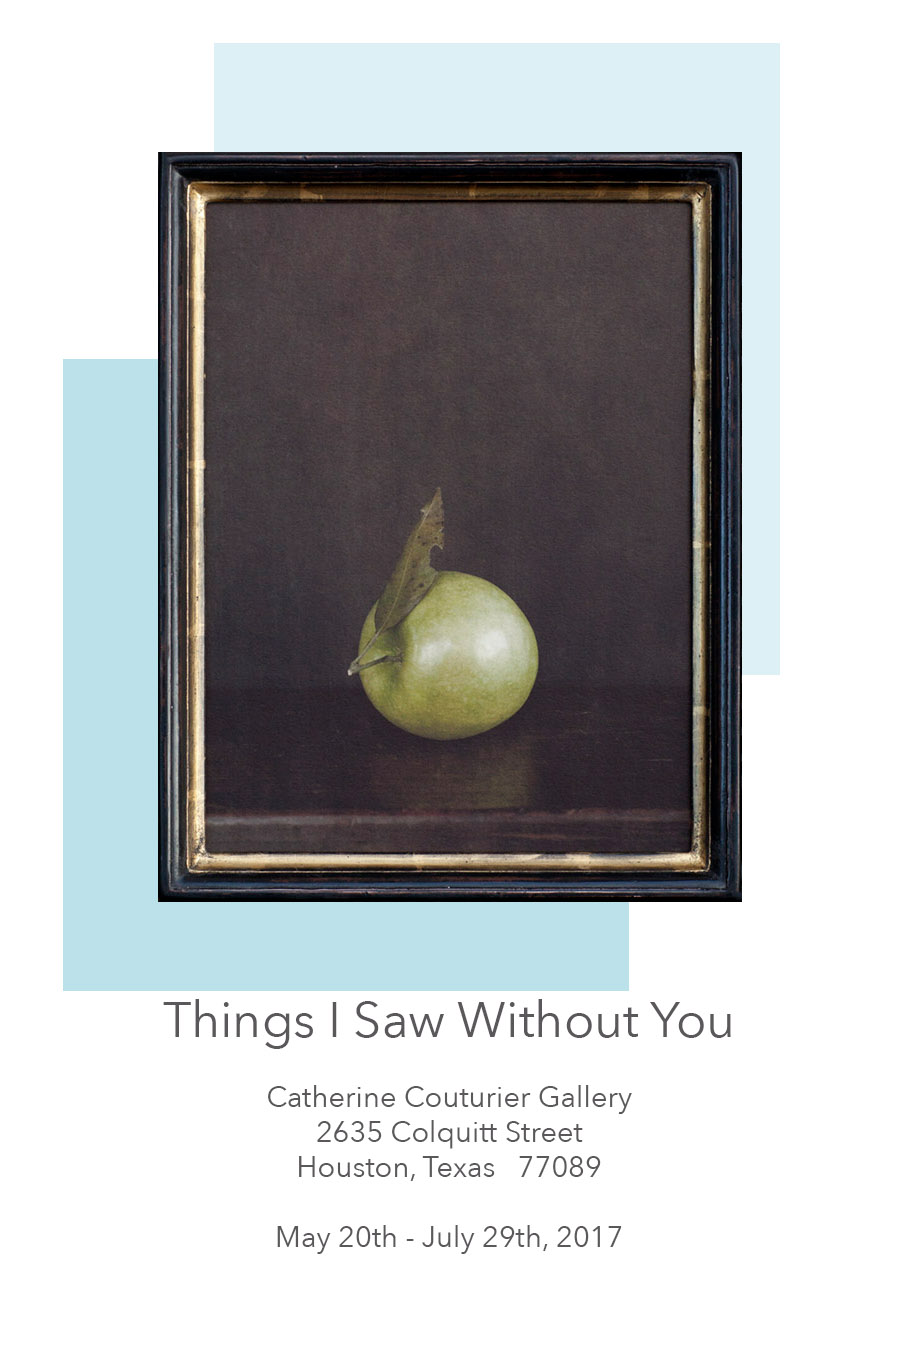 Things I Saw Without You  Solo exhibition at The Catherine Couturier Gallery, Houston Texas